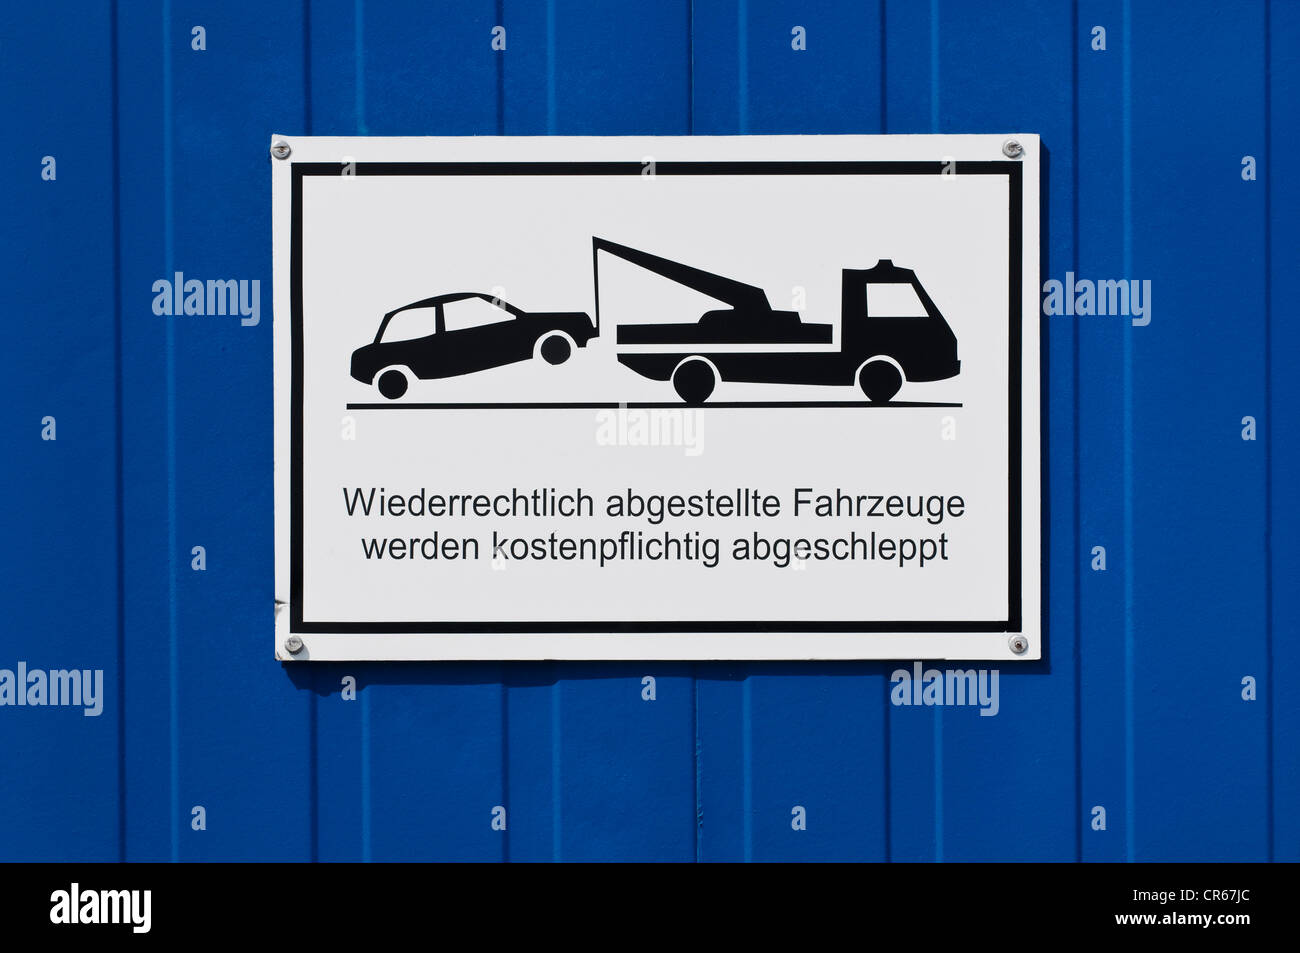 No parking sign with a pictogram and a message in German with a spelling mistake, Wiederrechtlich should be Widerrechtlich - Stock Image